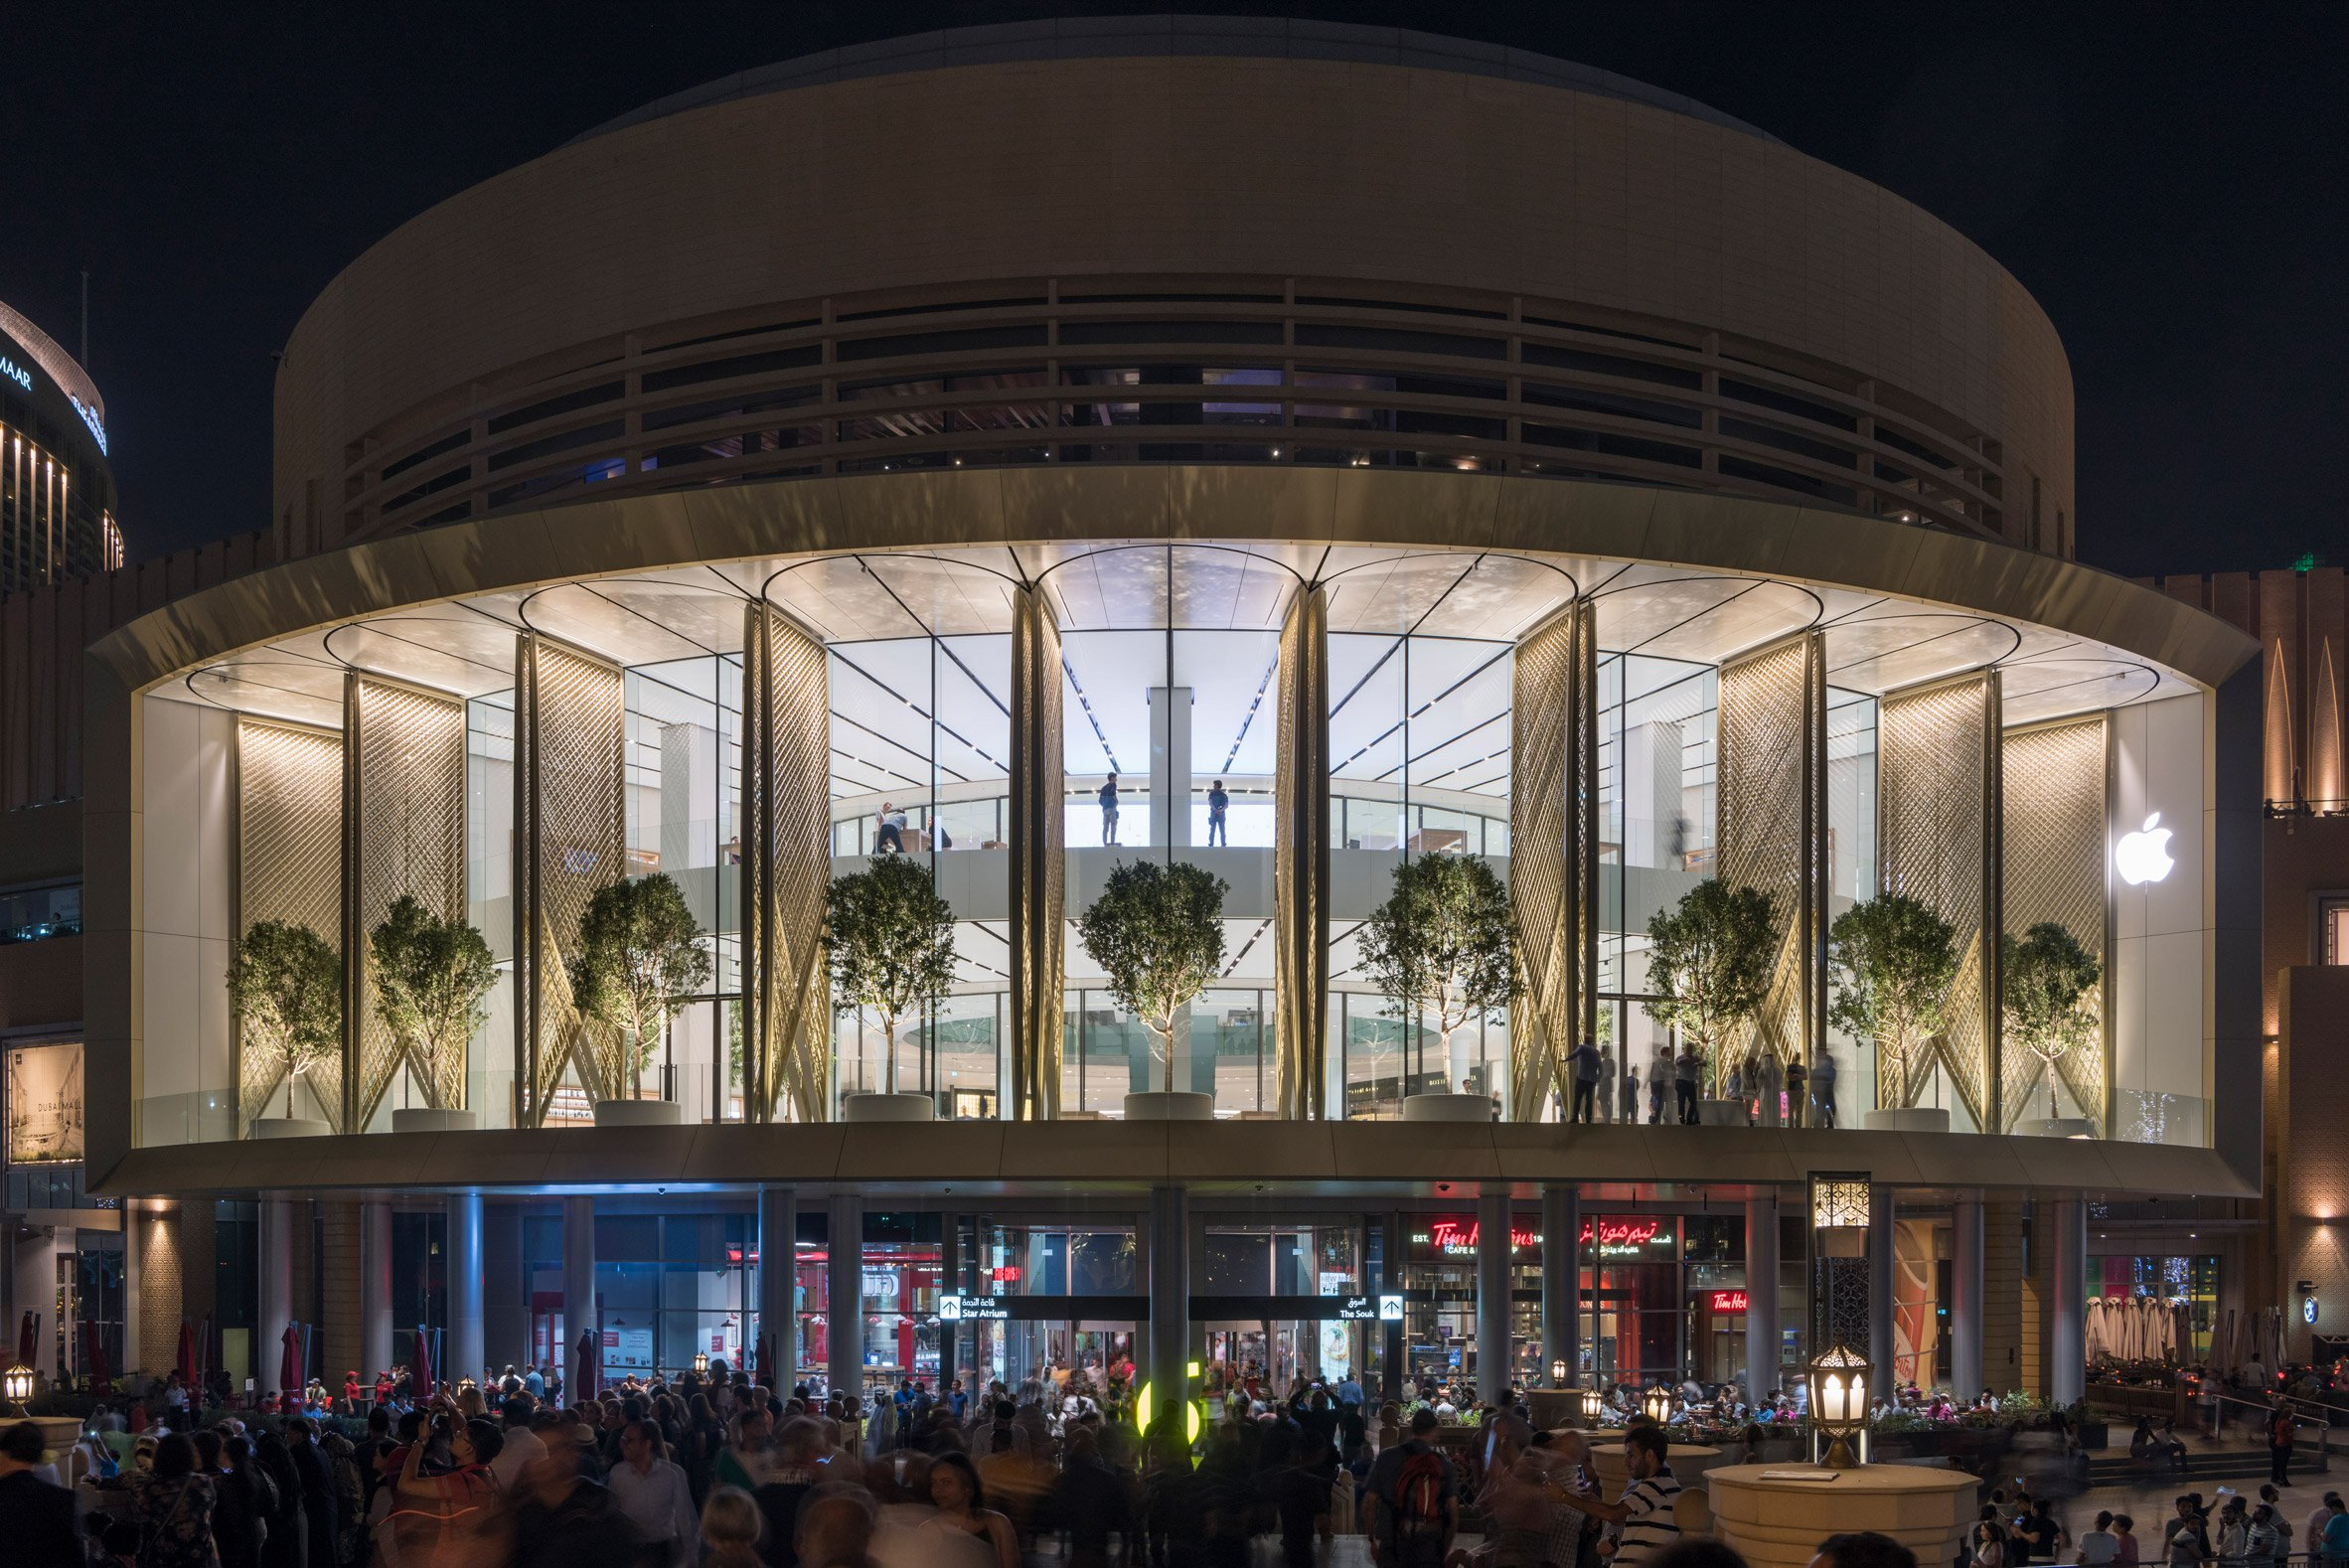 Studio Foster + Partners Adds Carbon-Fibre Covers to Dubai Apple Store foster + partners Studio Foster + Partners Adds Carbon-Fibre Covers to Dubai Apple Store Studio Foster Partners Adds Carbon Fibre Covers to Dubai Apple Store